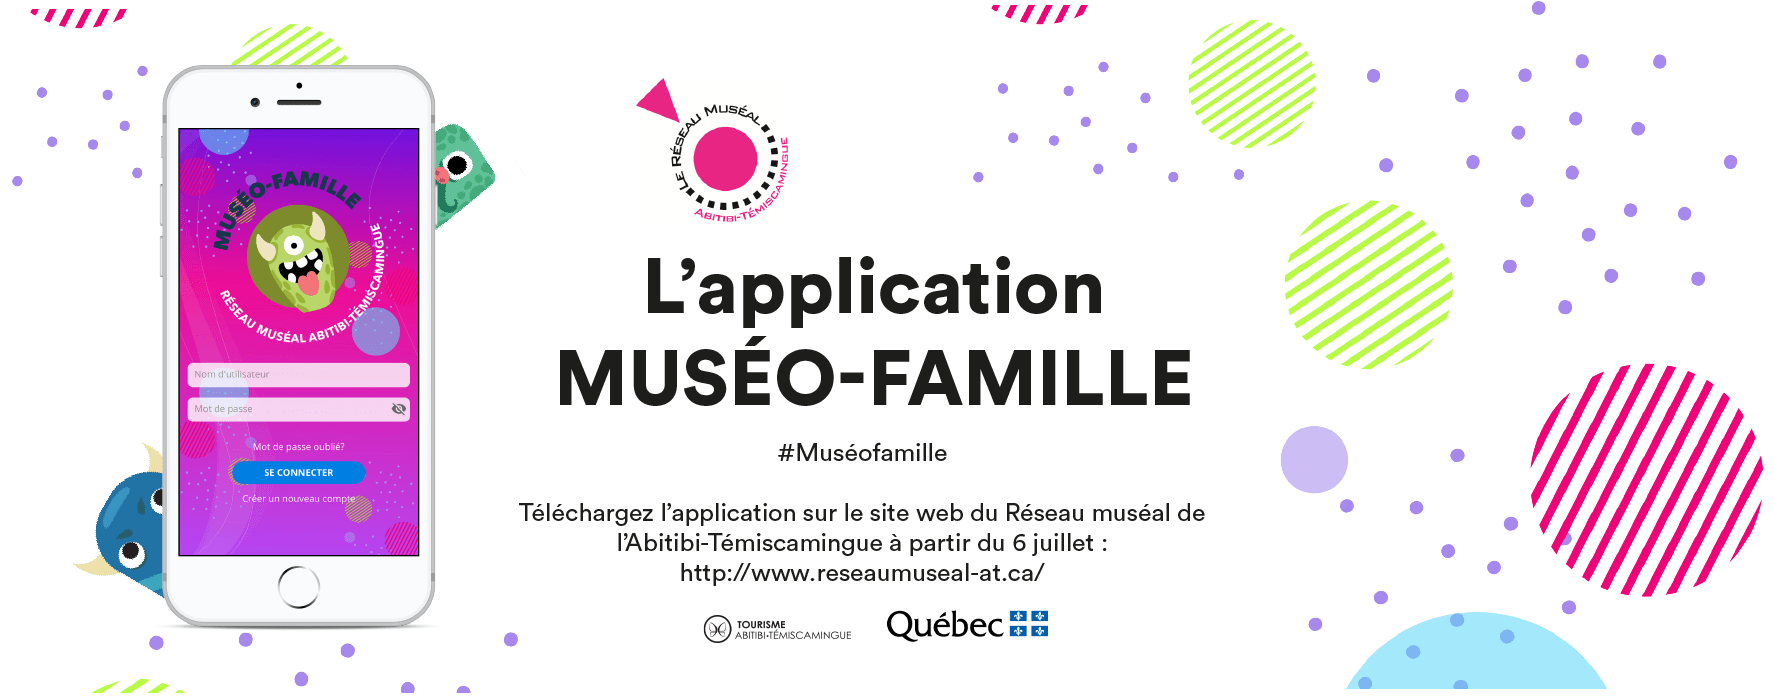 Application Muséo-Famille